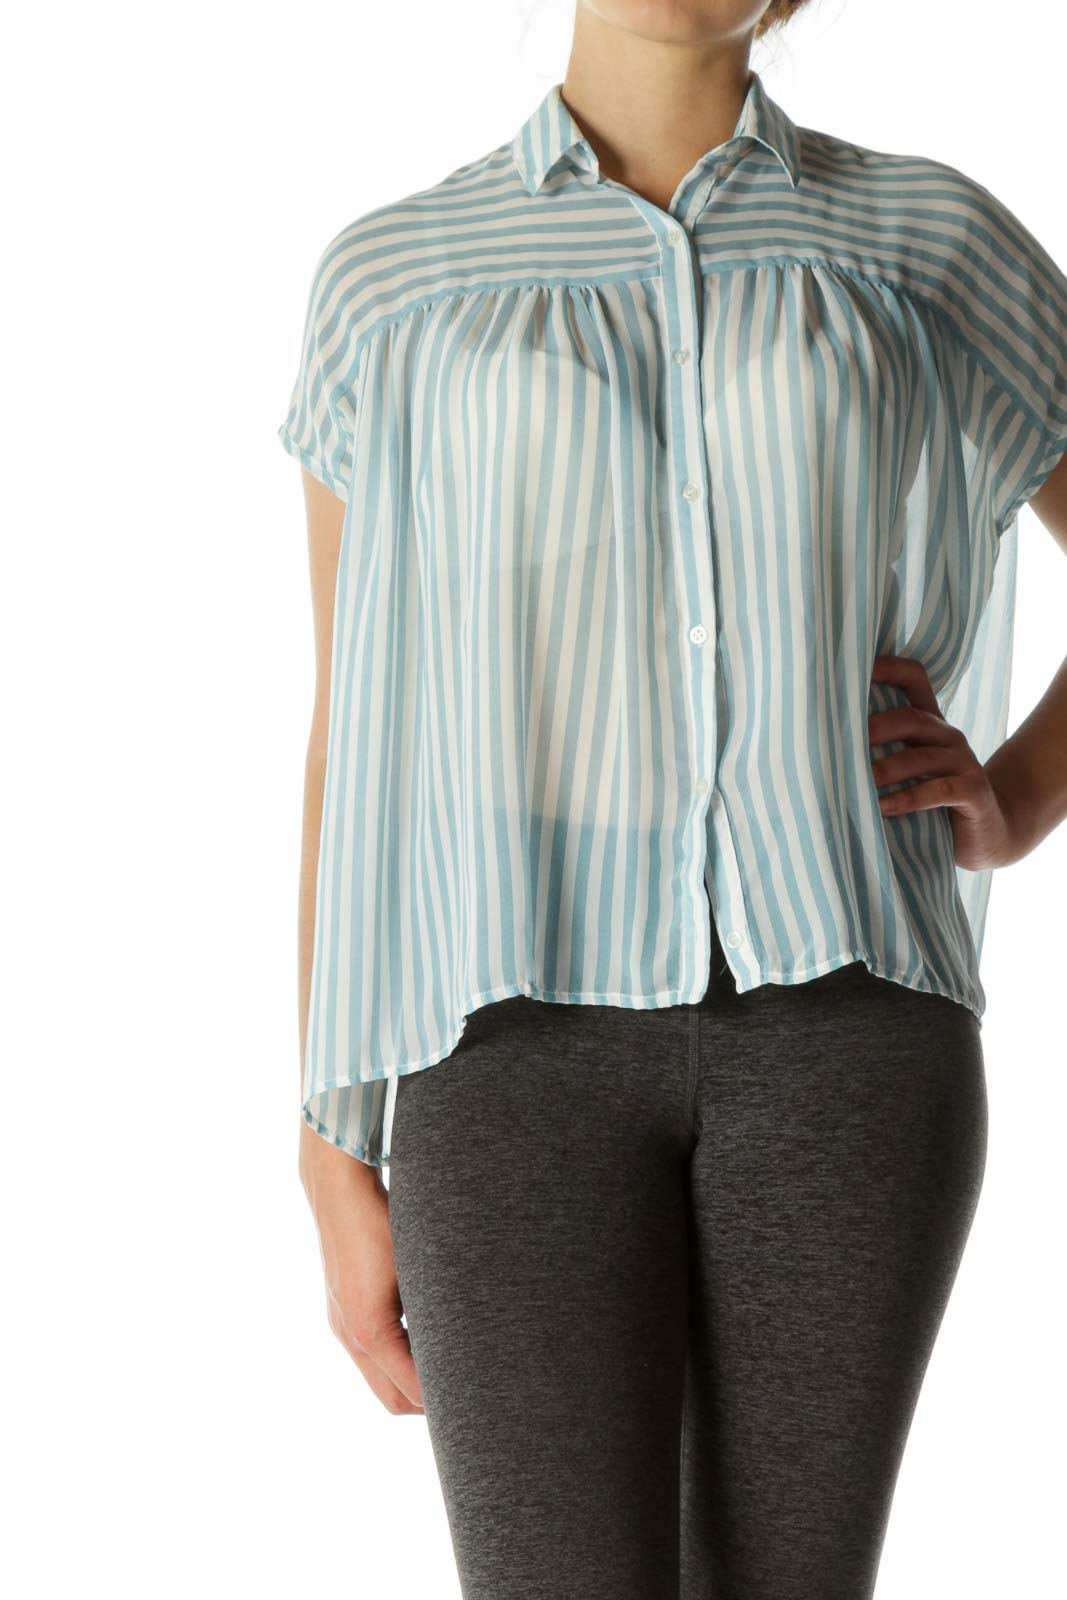 Blue White Striped Translucent Button Top